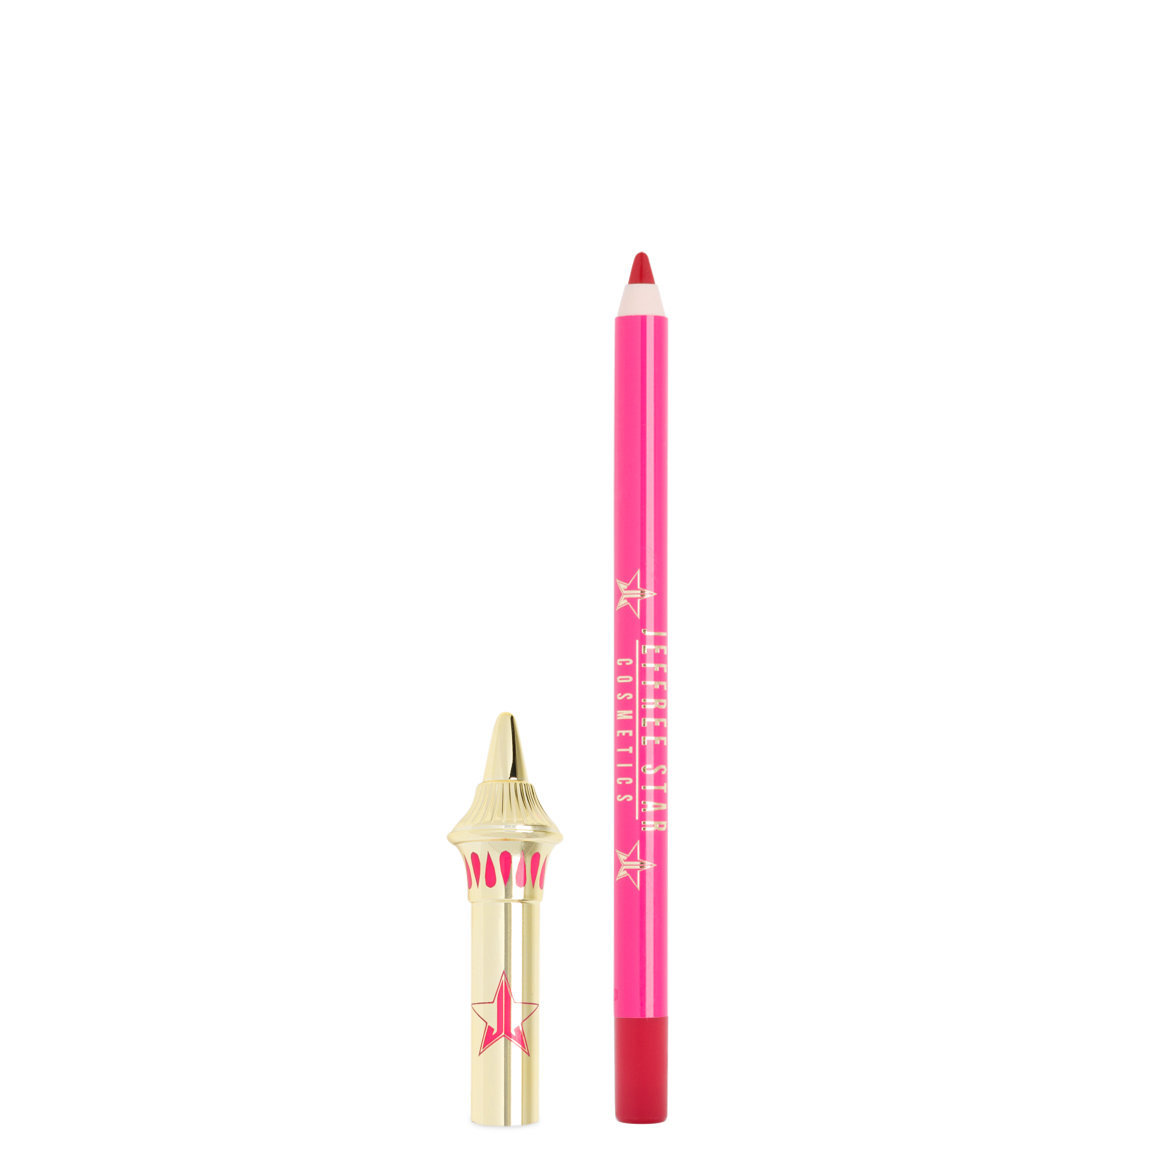 Jeffree Star Cosmetics Velour Lip Liner Cherry Wet alternative view 1.